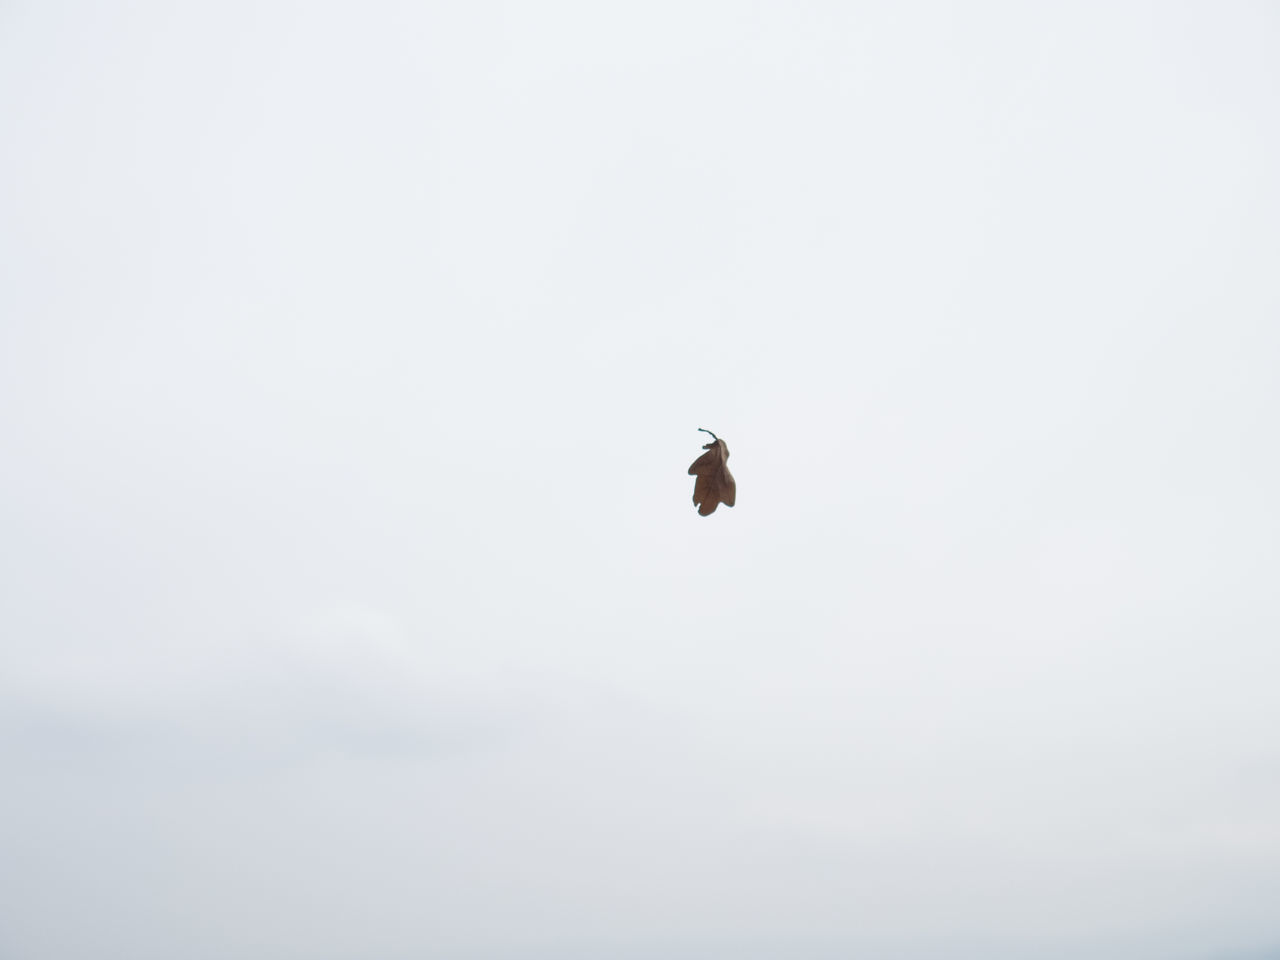 flying, bird, animals in the wild, copy space, nature, one animal, mid-air, animal themes, spread wings, low angle view, outdoors, day, no people, animal wildlife, sky, clear sky, beauty in nature, bird of prey